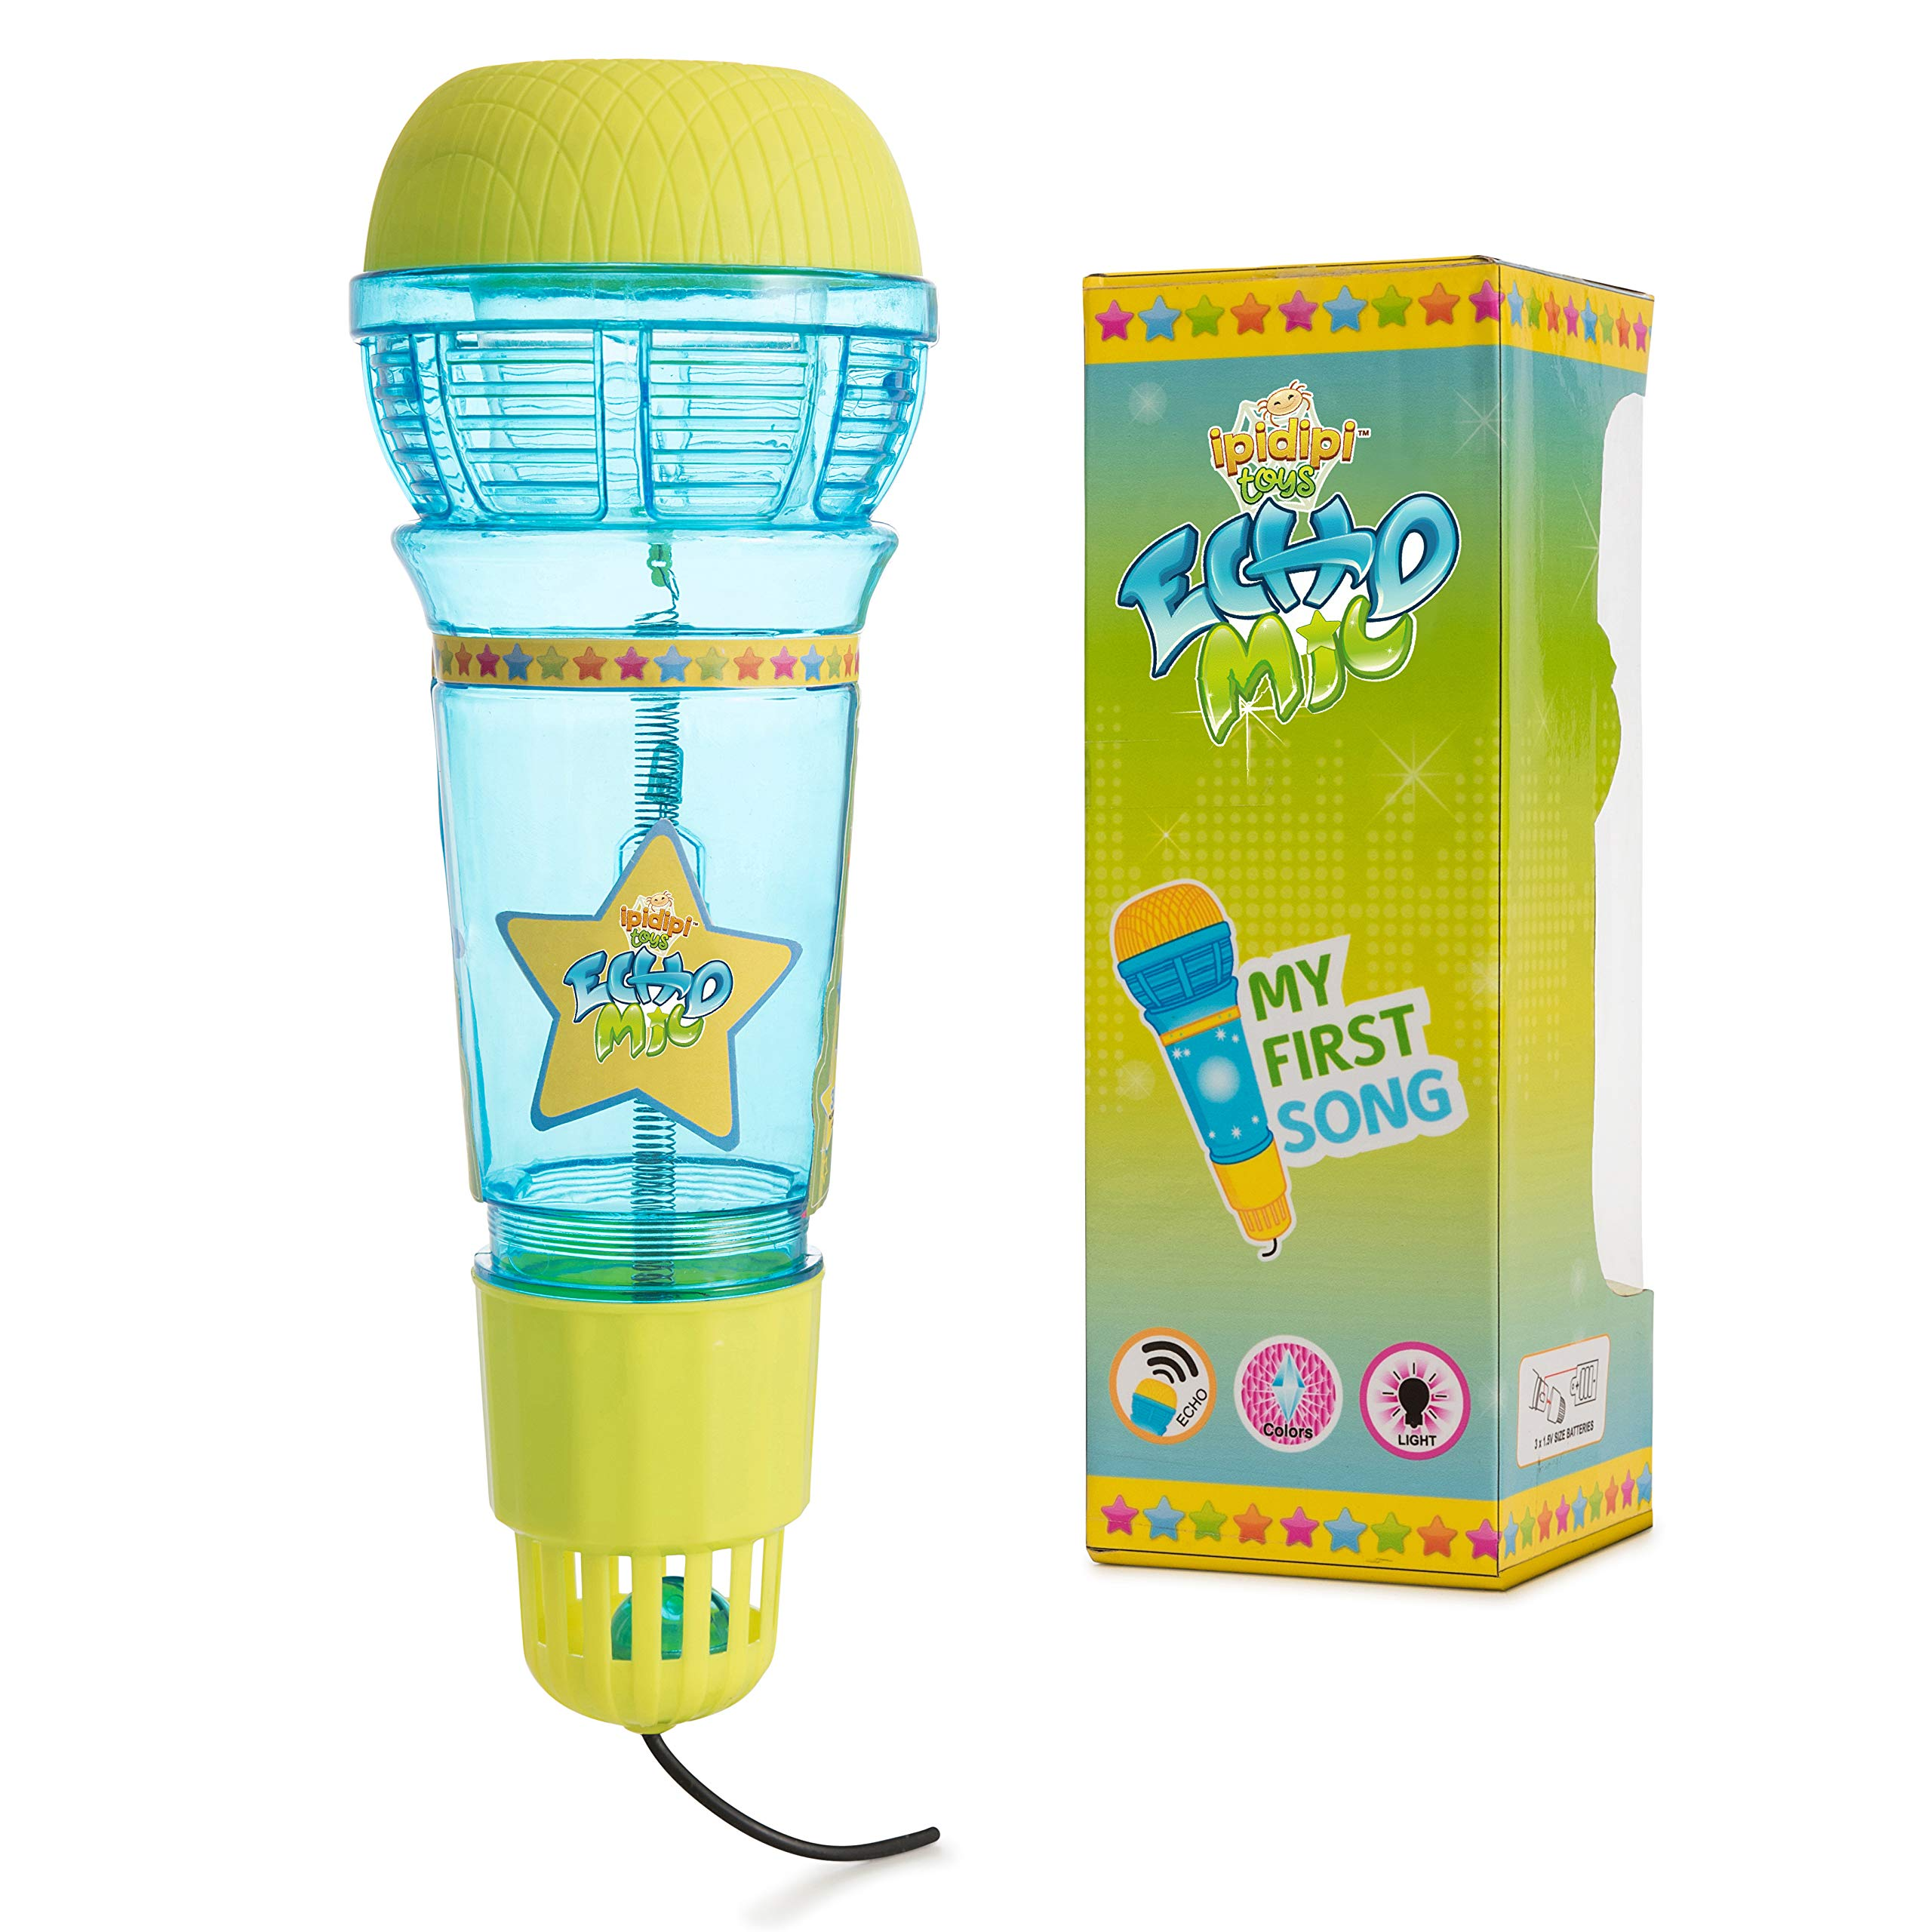 Echo Mic for Kids and Toddlers - Magic Microphone with Multicolored Flashing Light and Fun Rattle - Blue and Yellow Speech Therapy Feedback Toy - Retro Gift For Boys and Girls Who Love Singing, Music by IPIDIPI TOYS